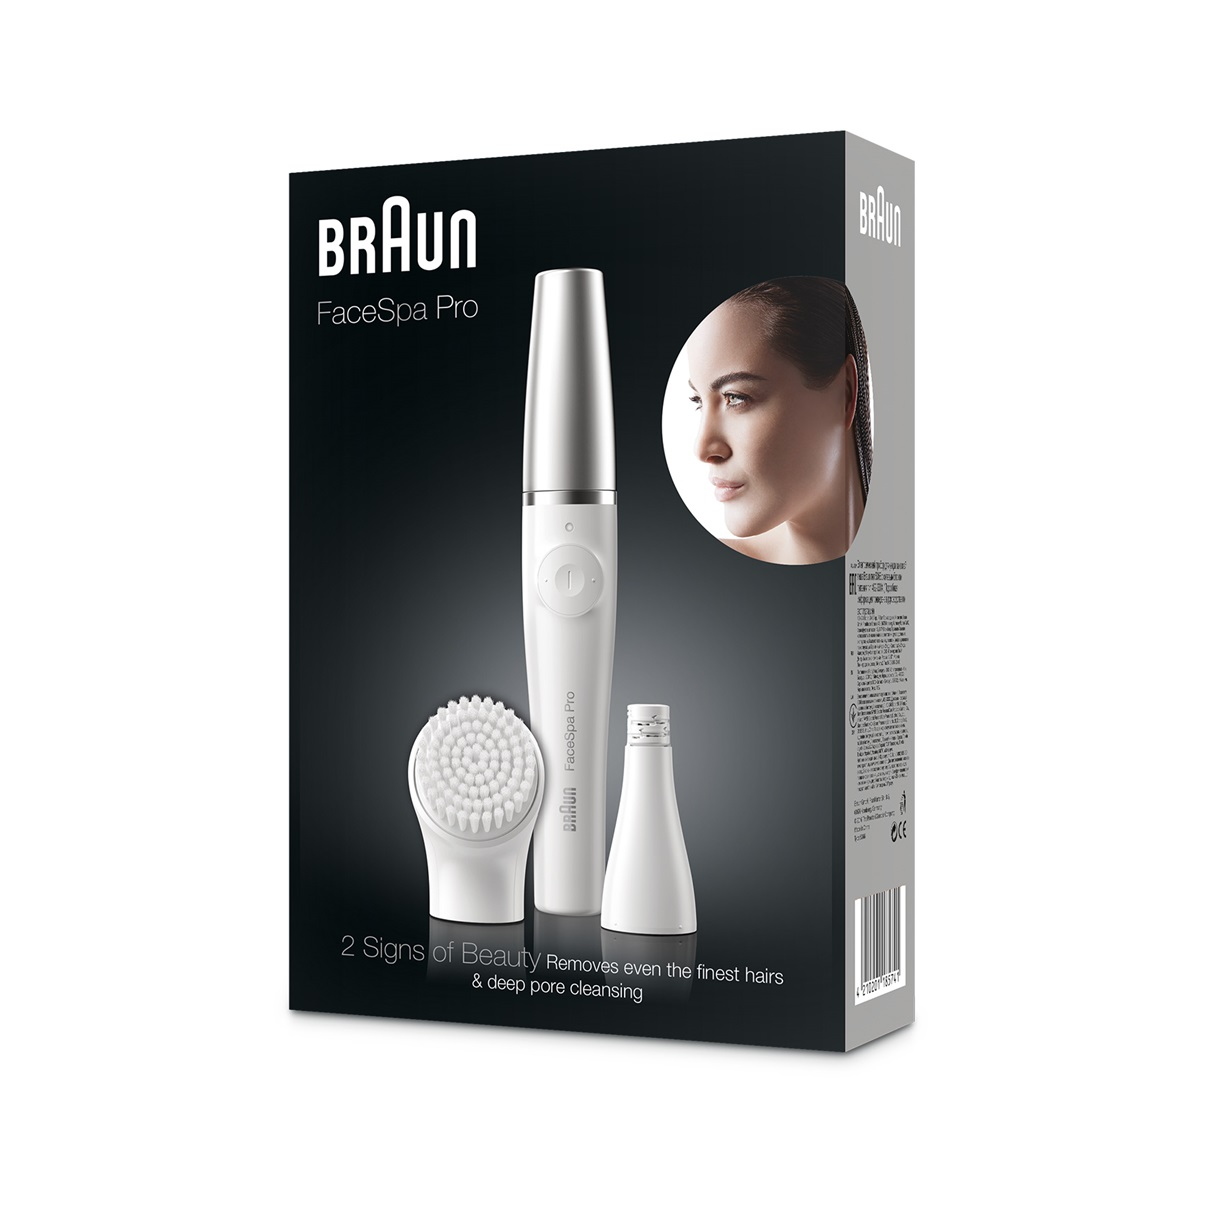 Braun FaceSpa Pro 910 - packaging